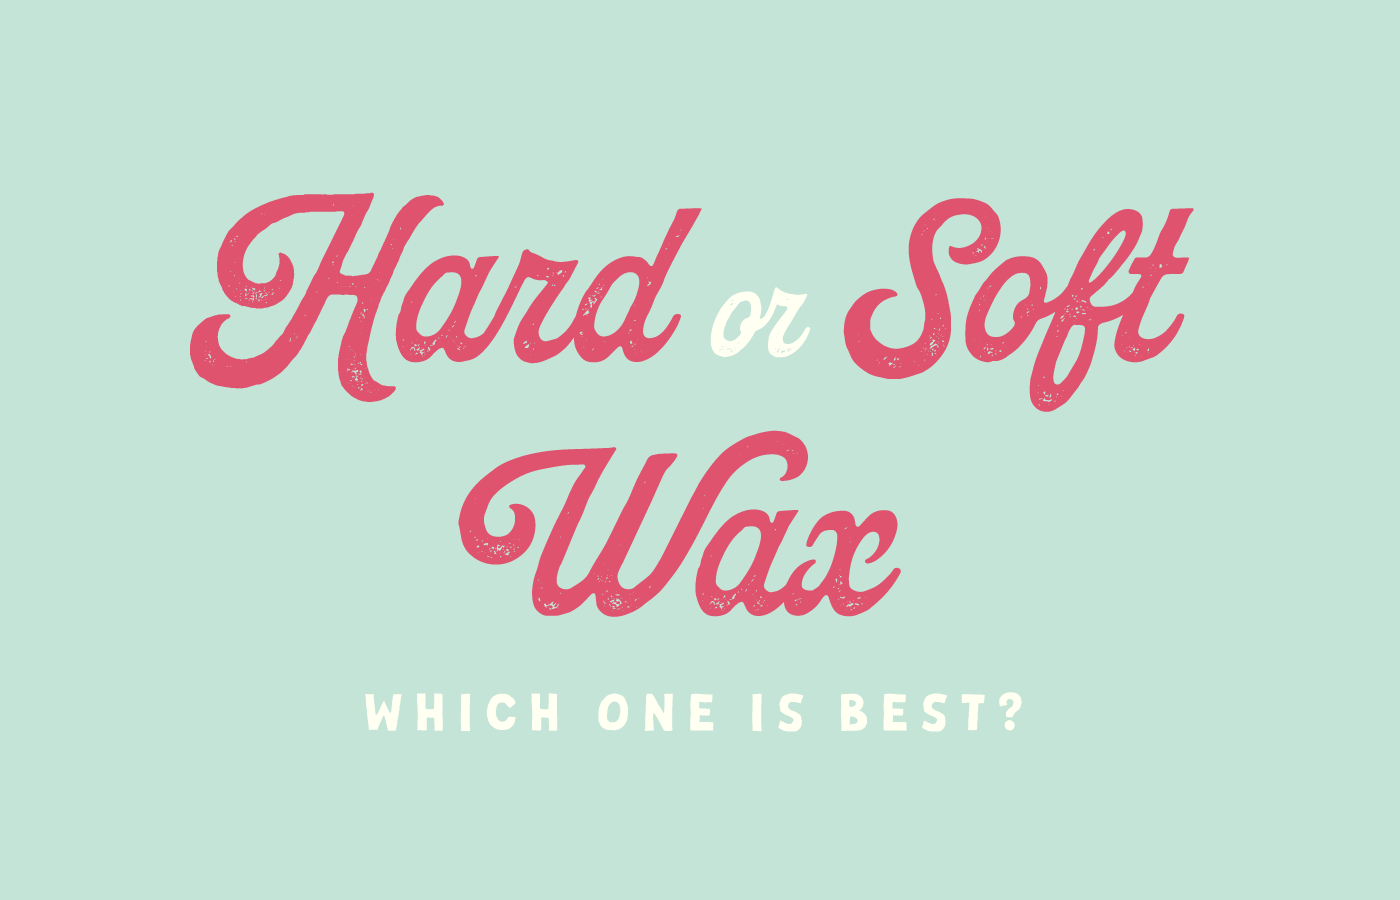 Hard wax vs soft wax text